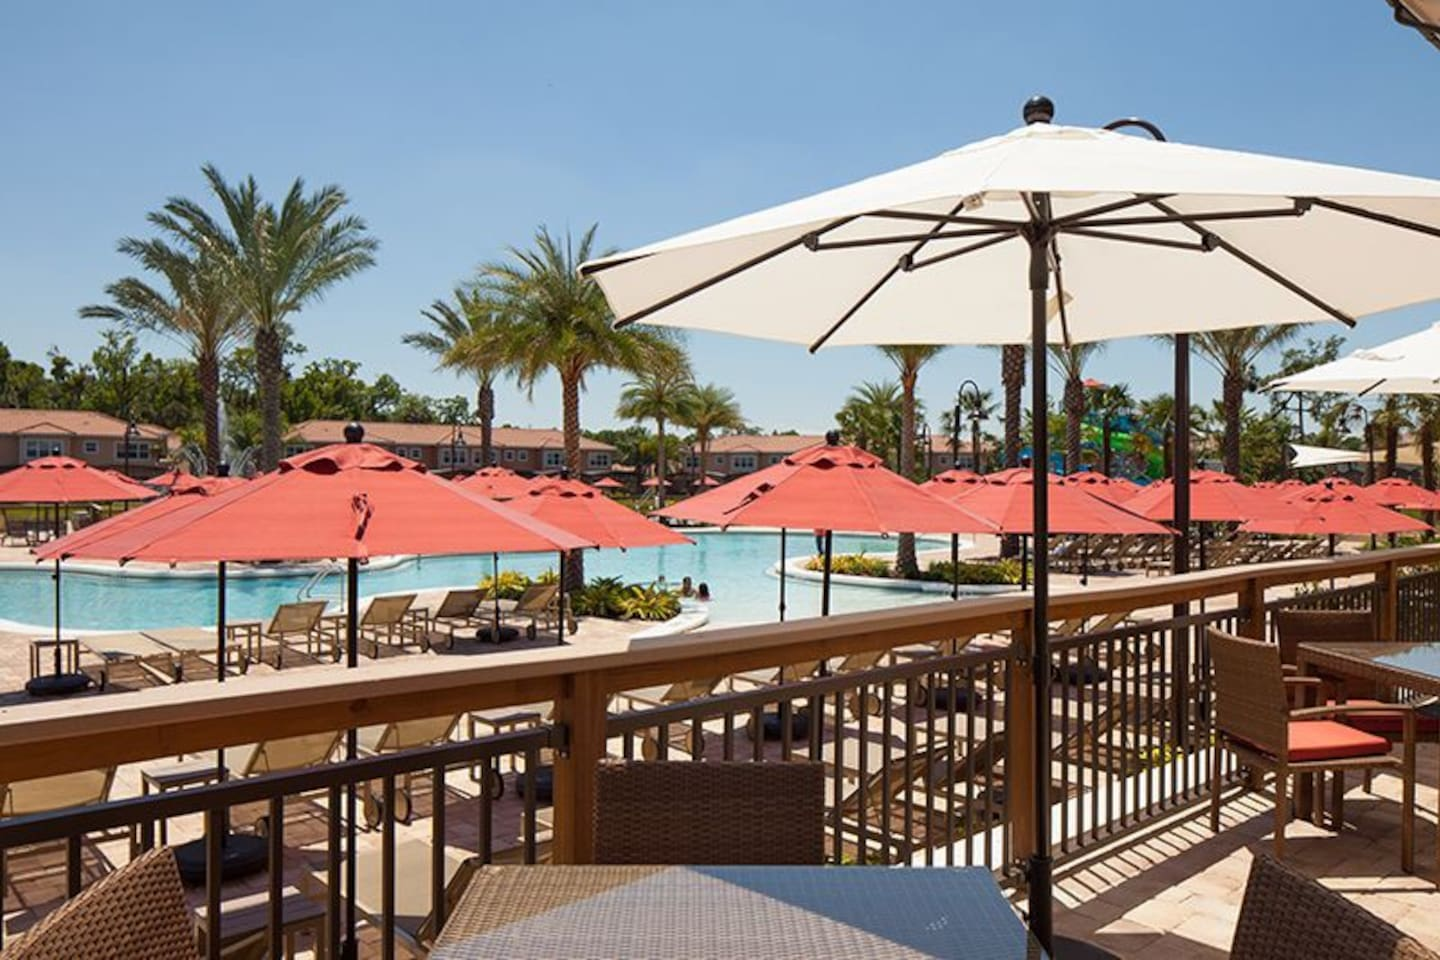 Regal-Oaks-Resort-Clubhouse-Seating-Area-2